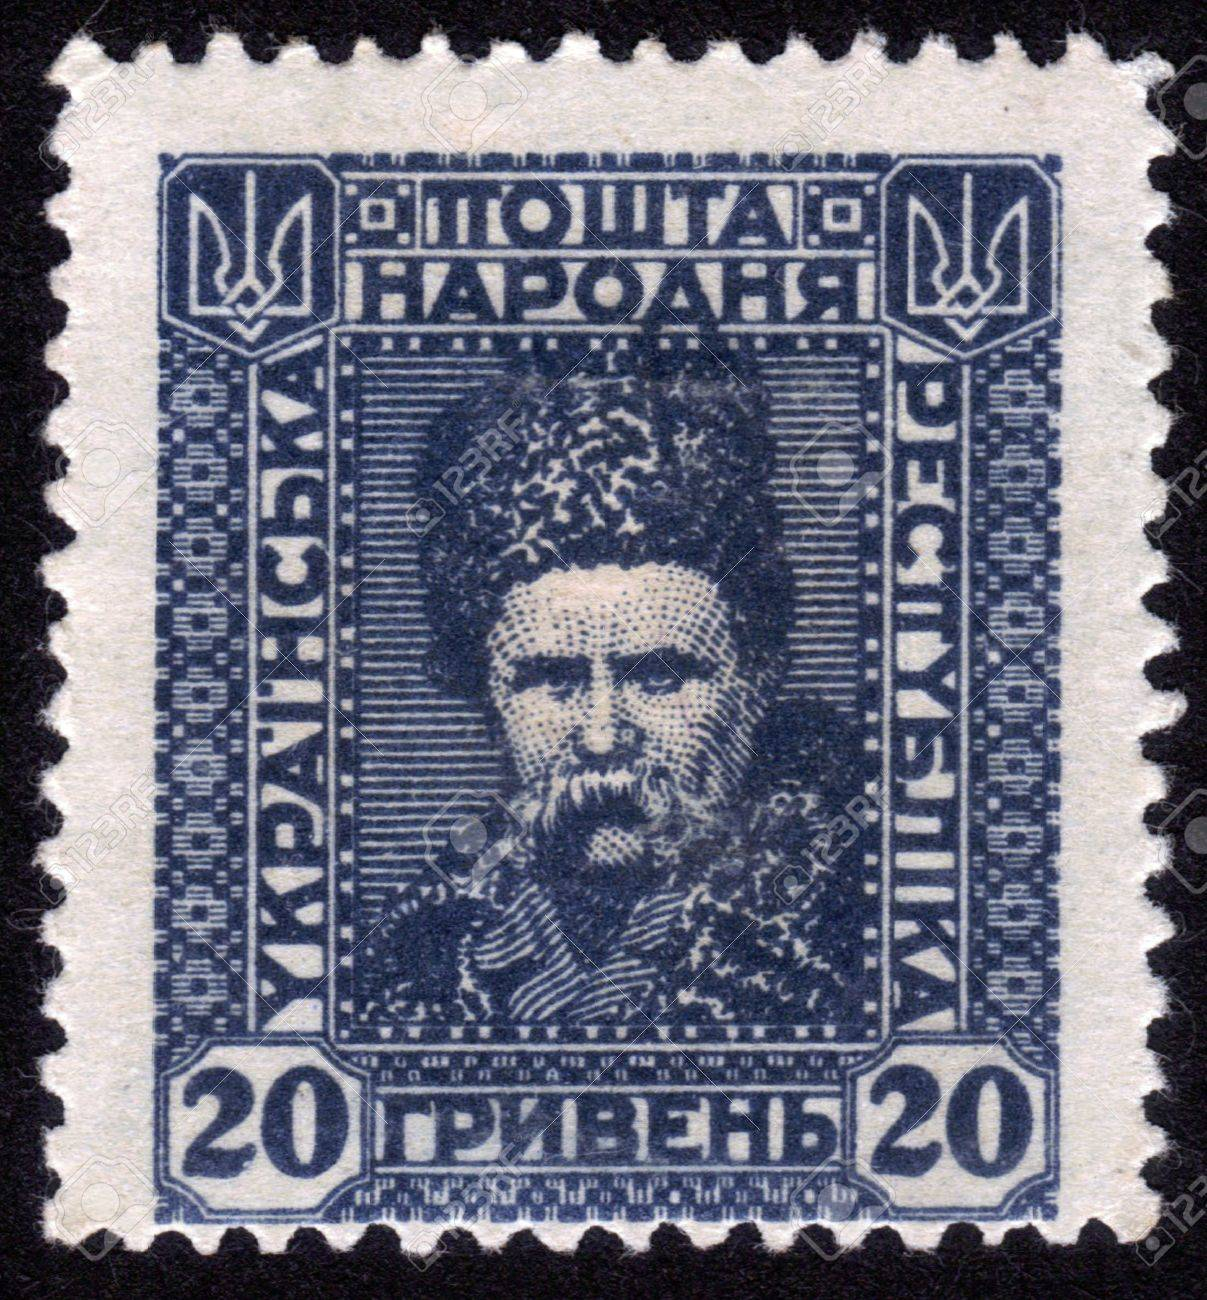 UKRAINE-CIRCA 1922 A stamp printed in UKRAINE shows image of Taras Hryhorovych Shevchenko  March 9 1814 - March 10 1861  was a Ukrainian poet, artist and humanist, circa 1922  Stock Photo - 14147889